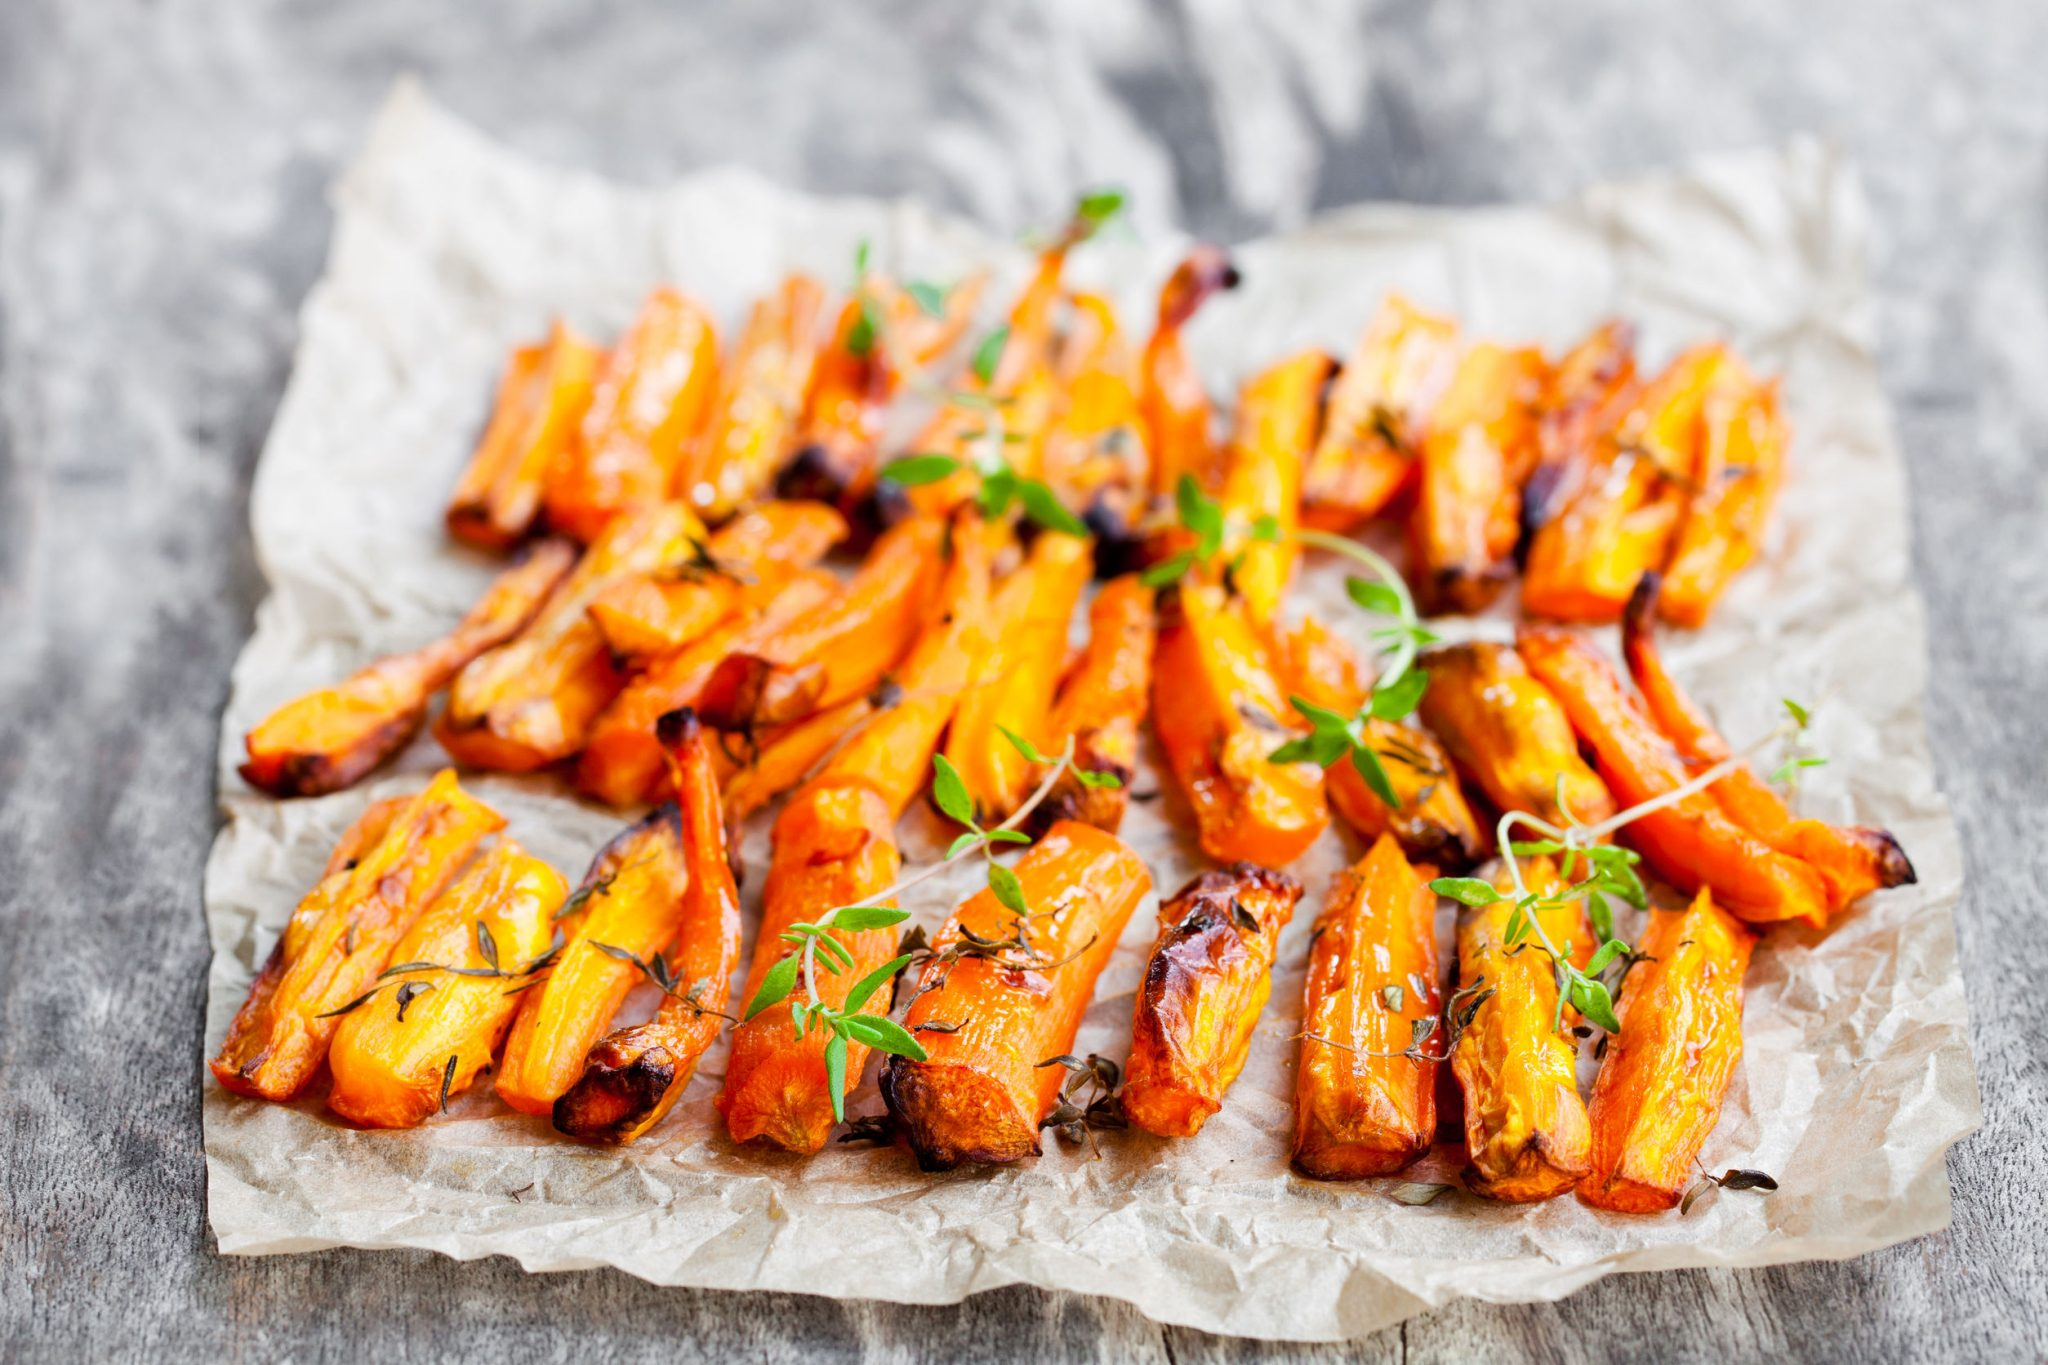 A delightful roasted parmesan carrots recipe.